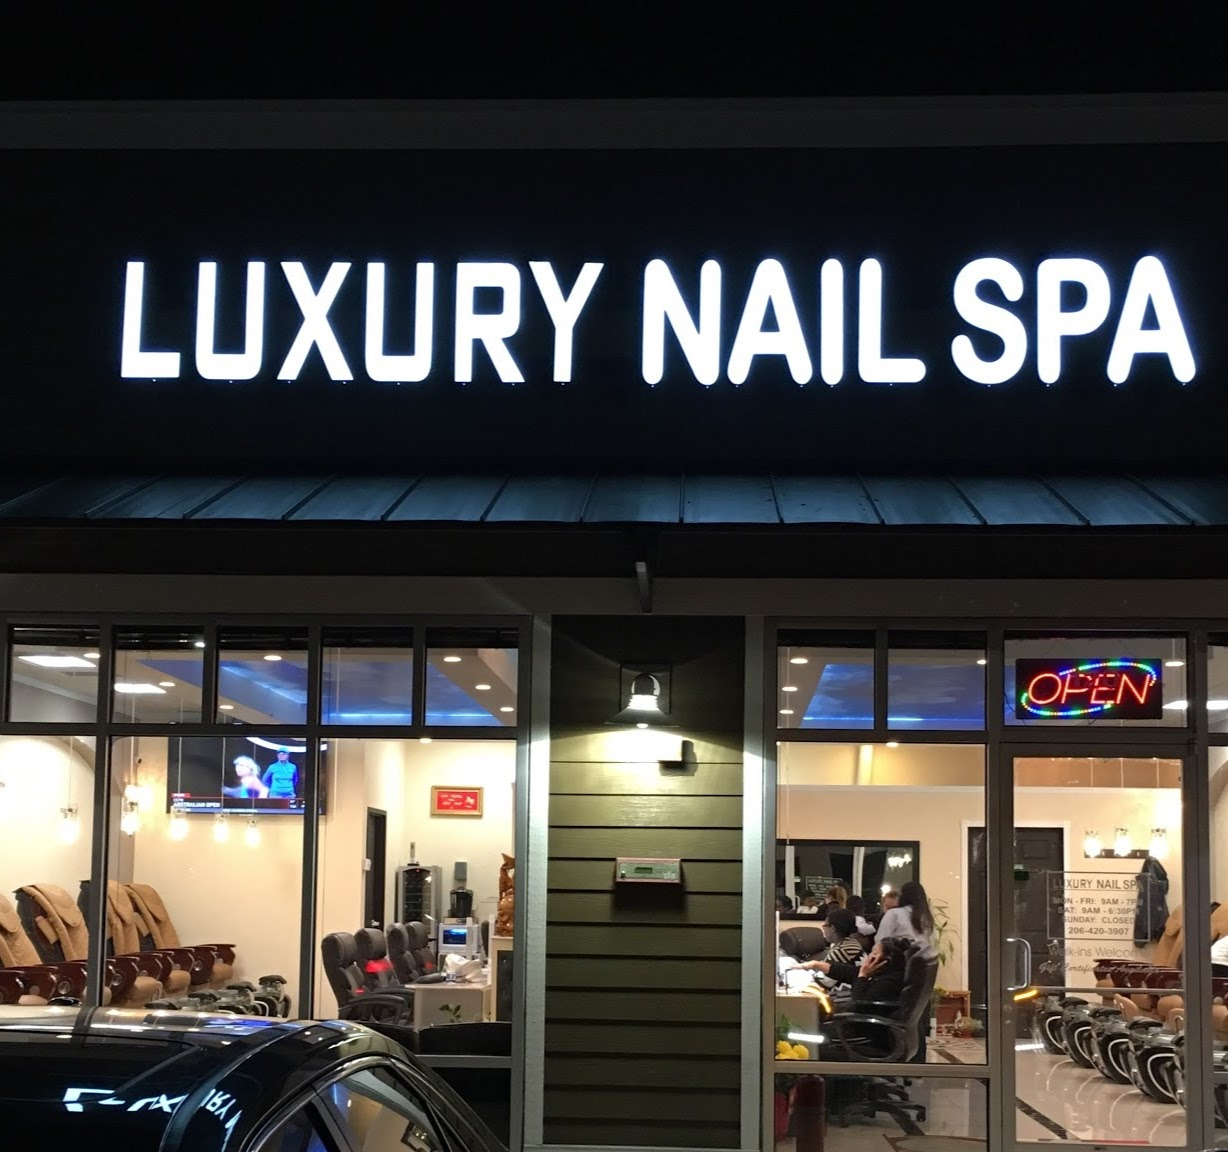 Luxury Nail Spa NW, 13038 Interurban Avenue South, Tukwila, Reviews ...